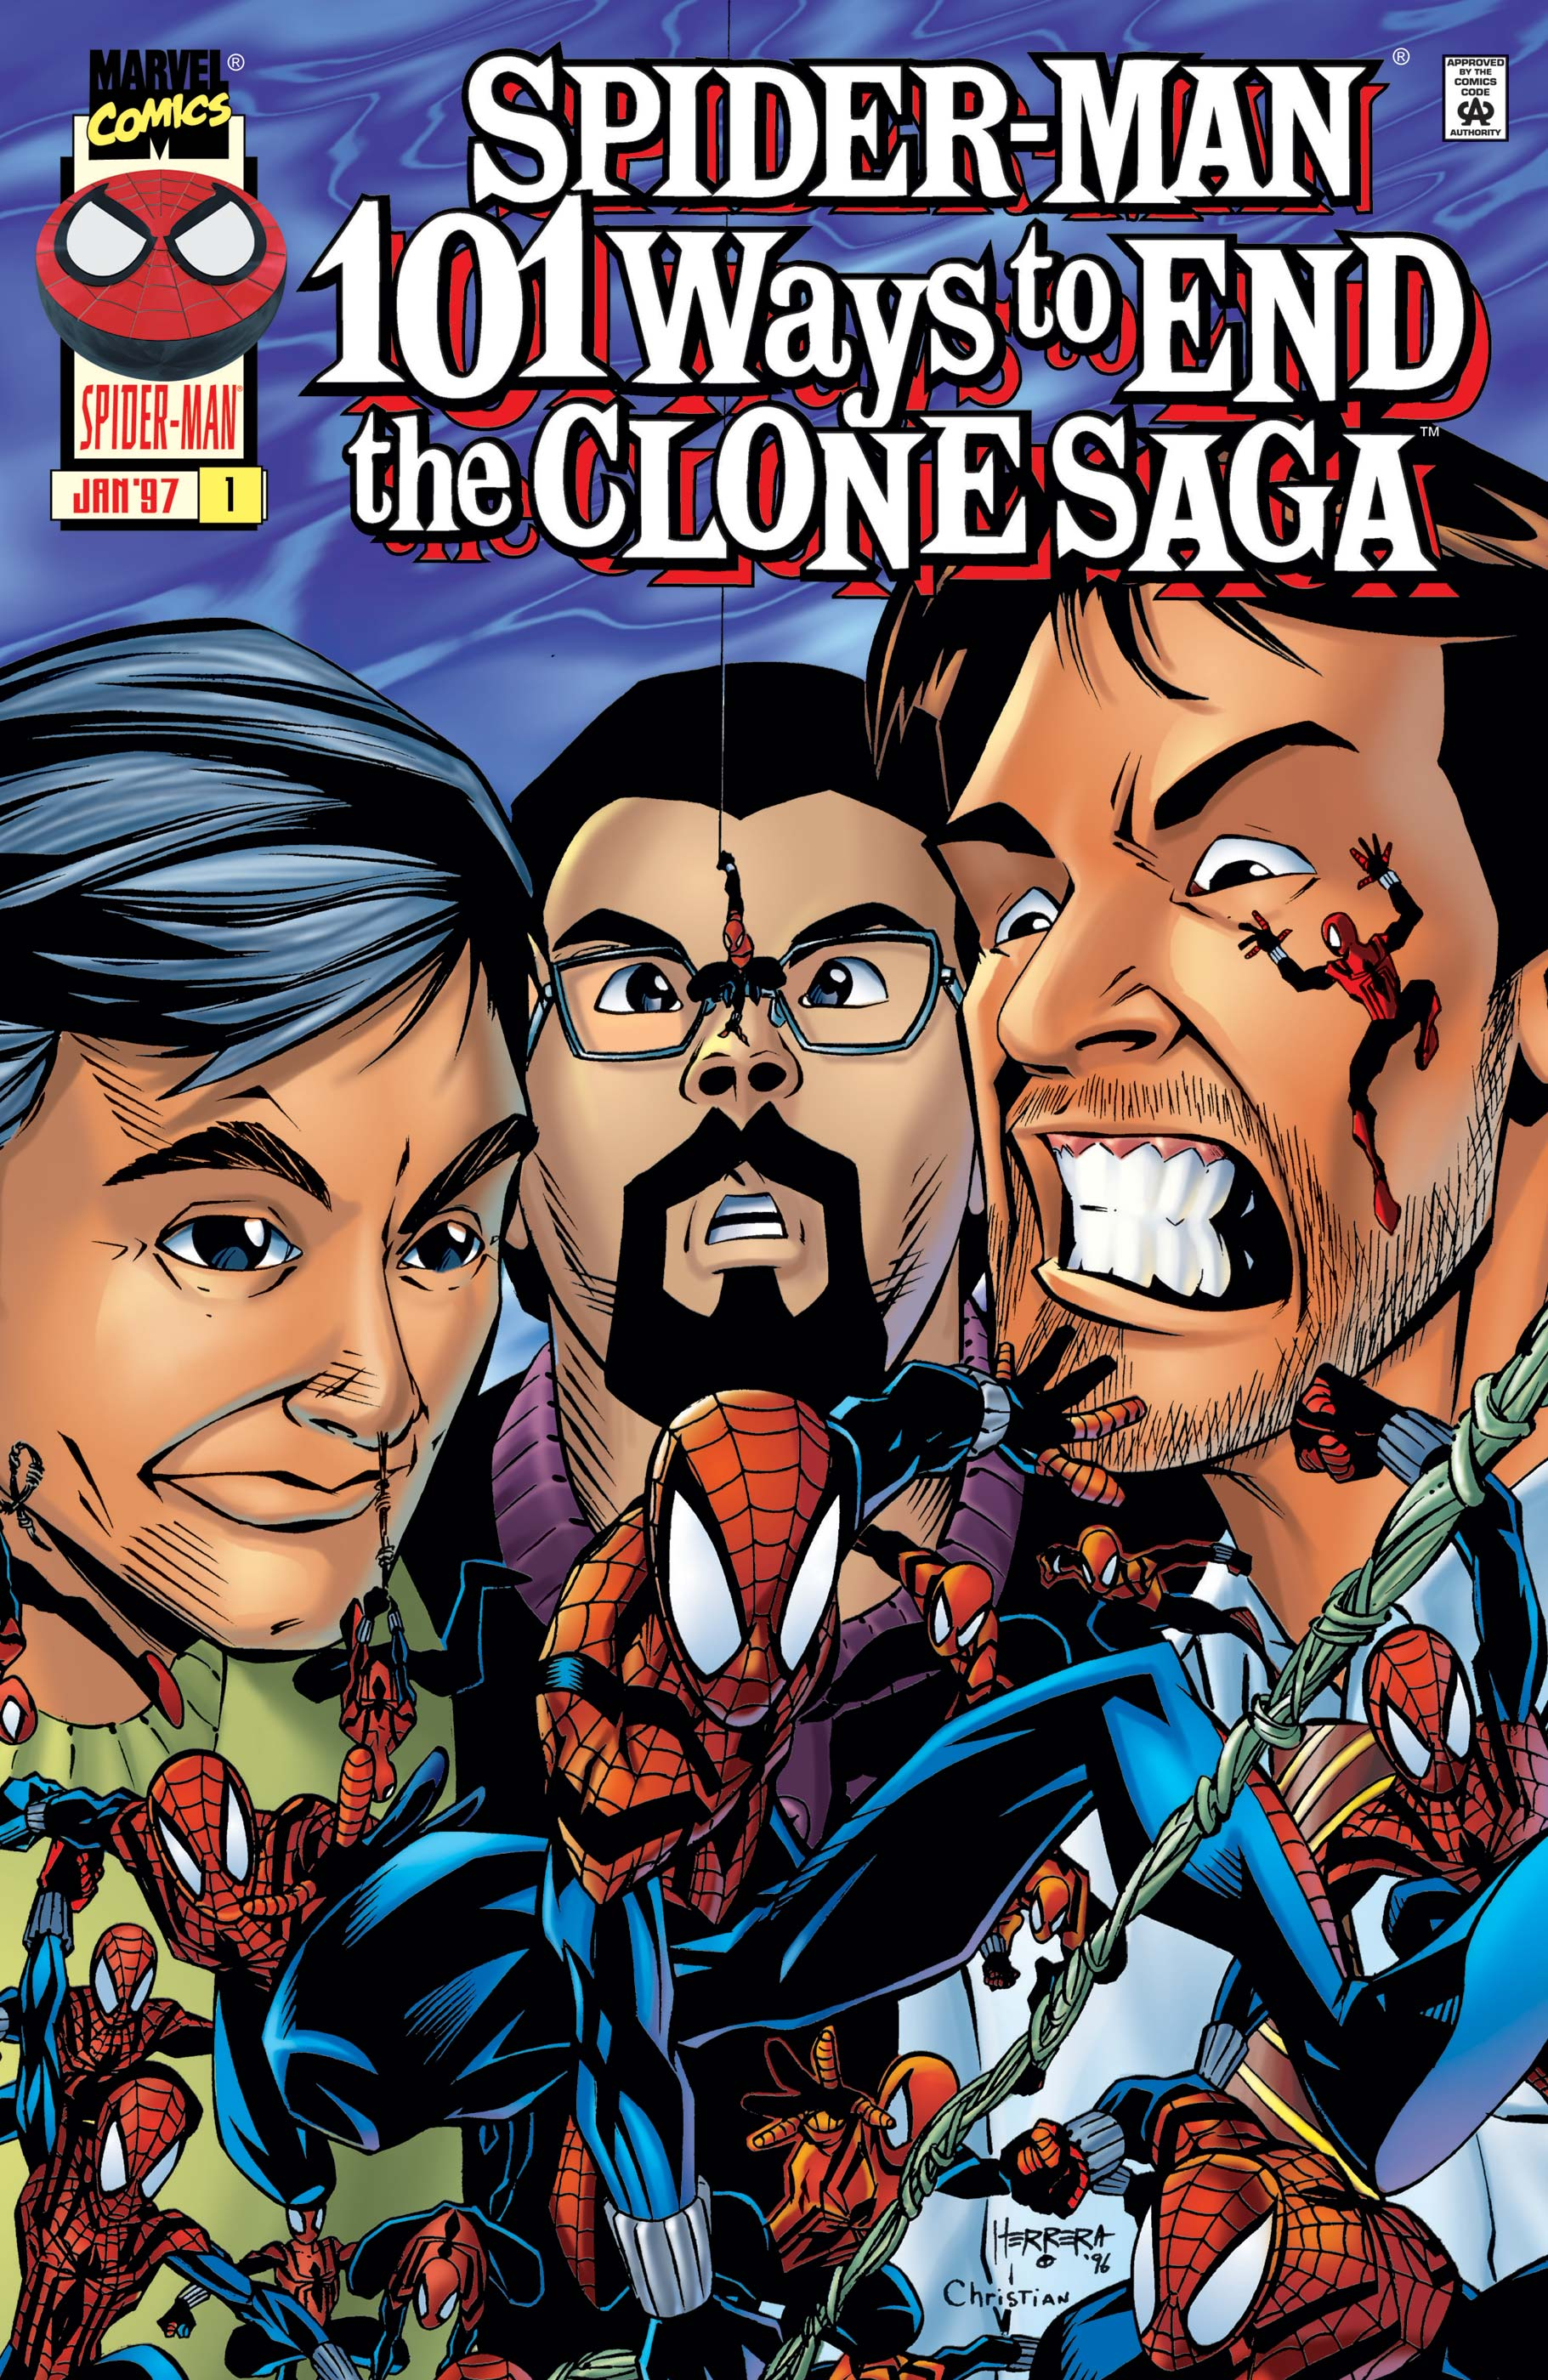 Spider-Man: 101 Ways to End the Clone Saga (1997) #1